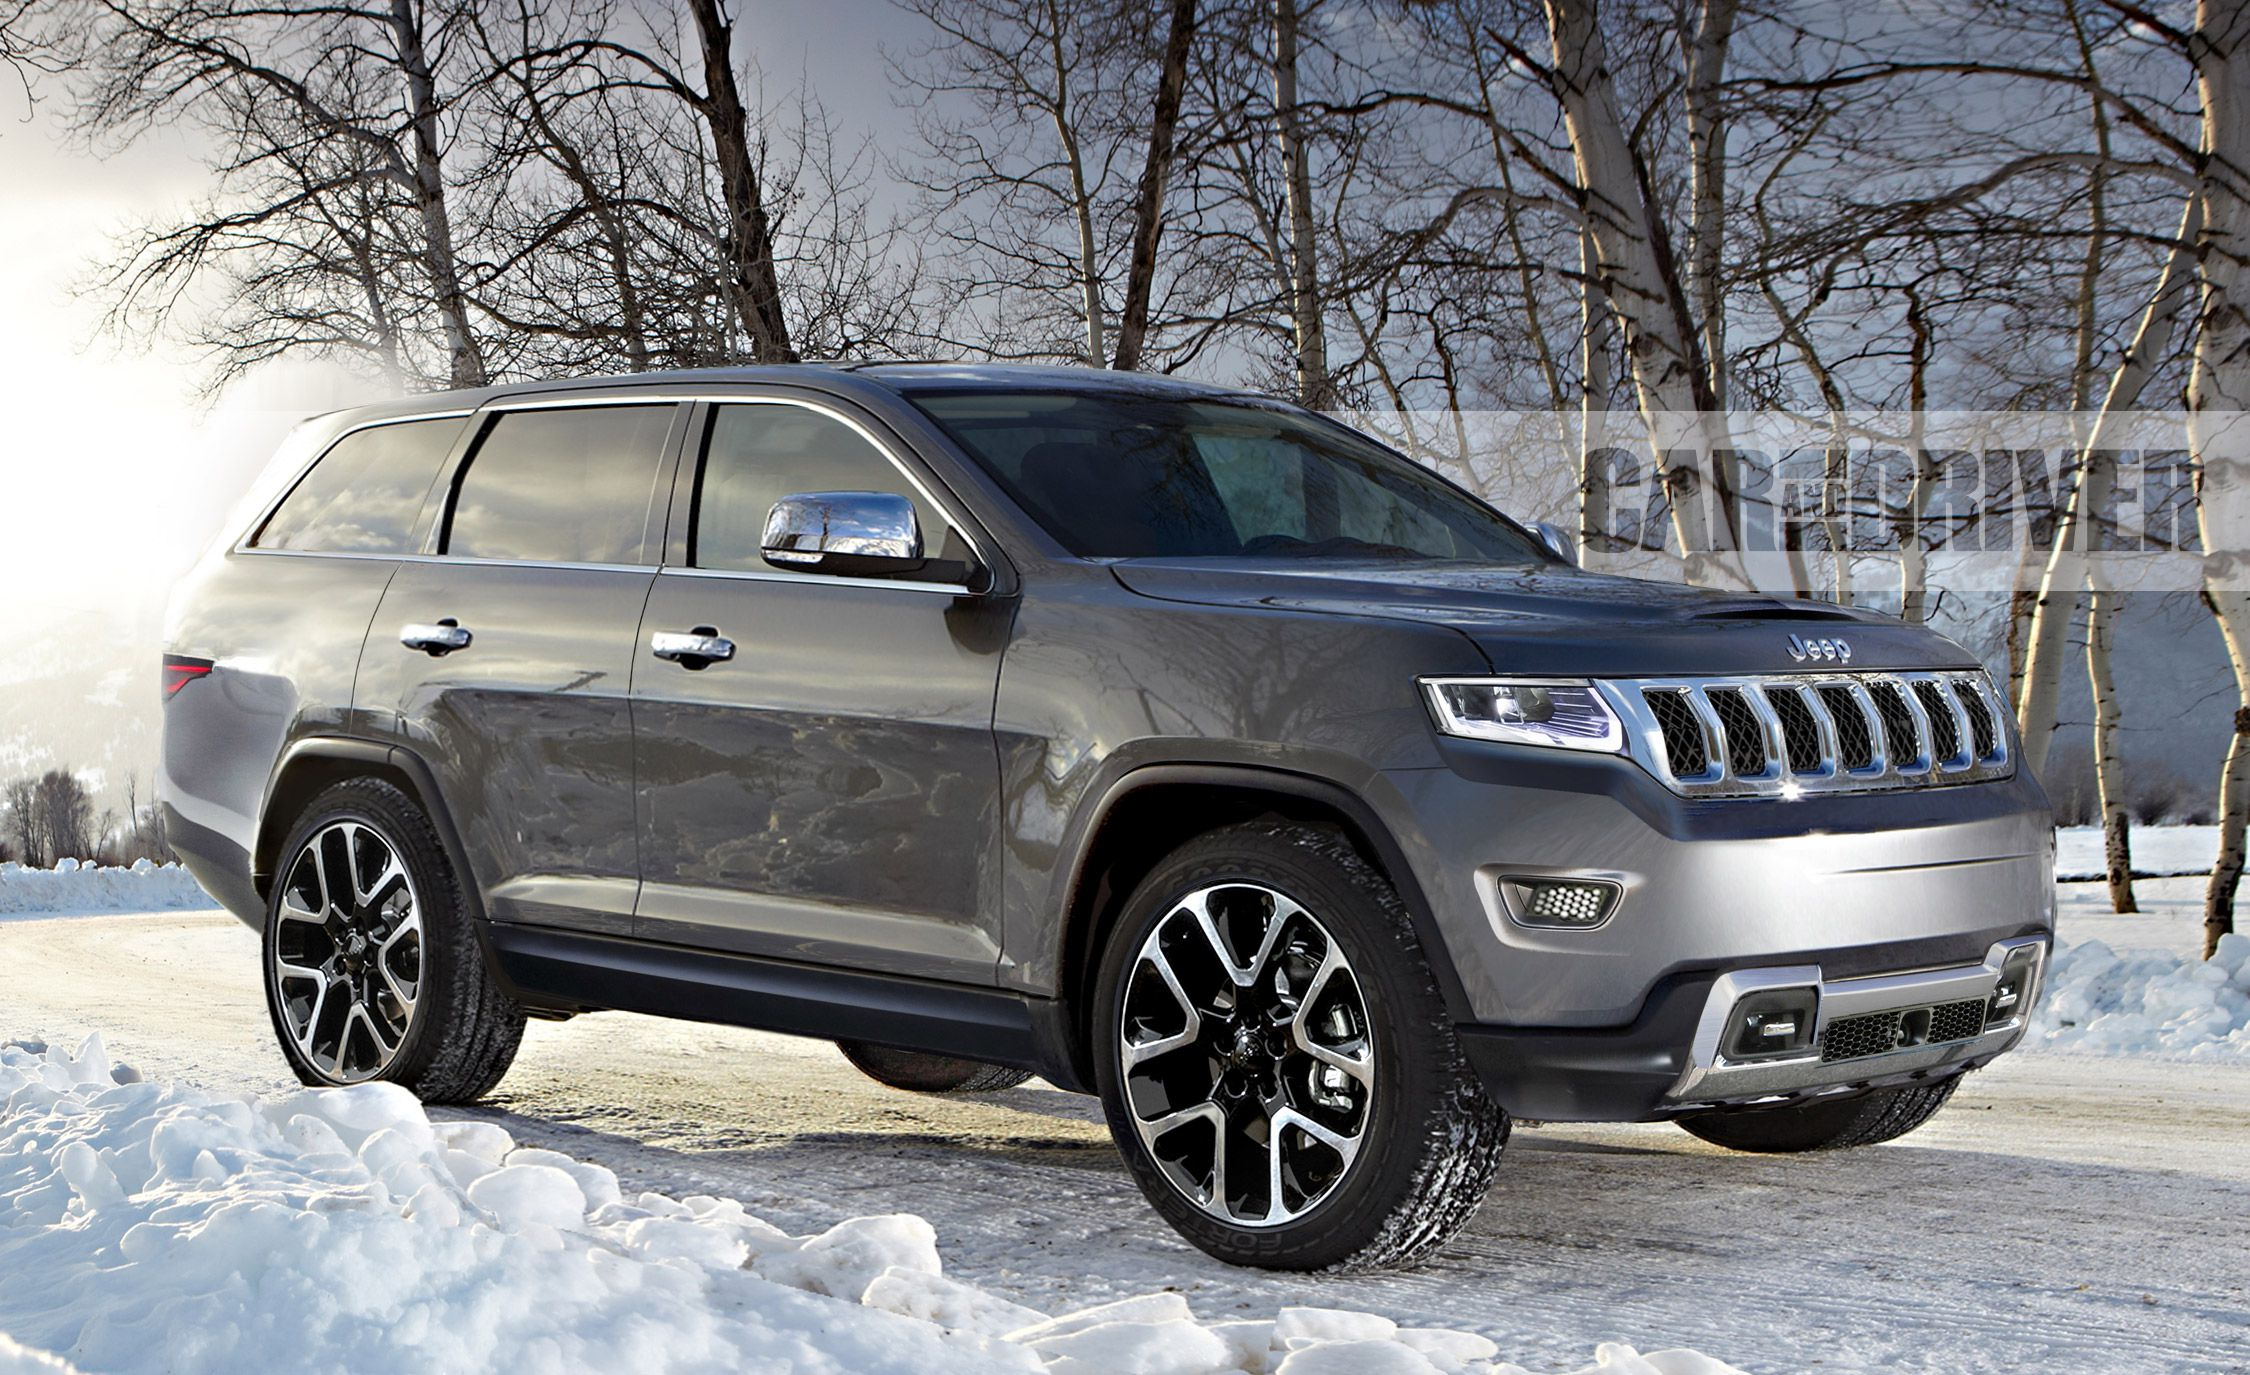 64 The 2020 Jeep Grand Cherokee Diesel Redesign